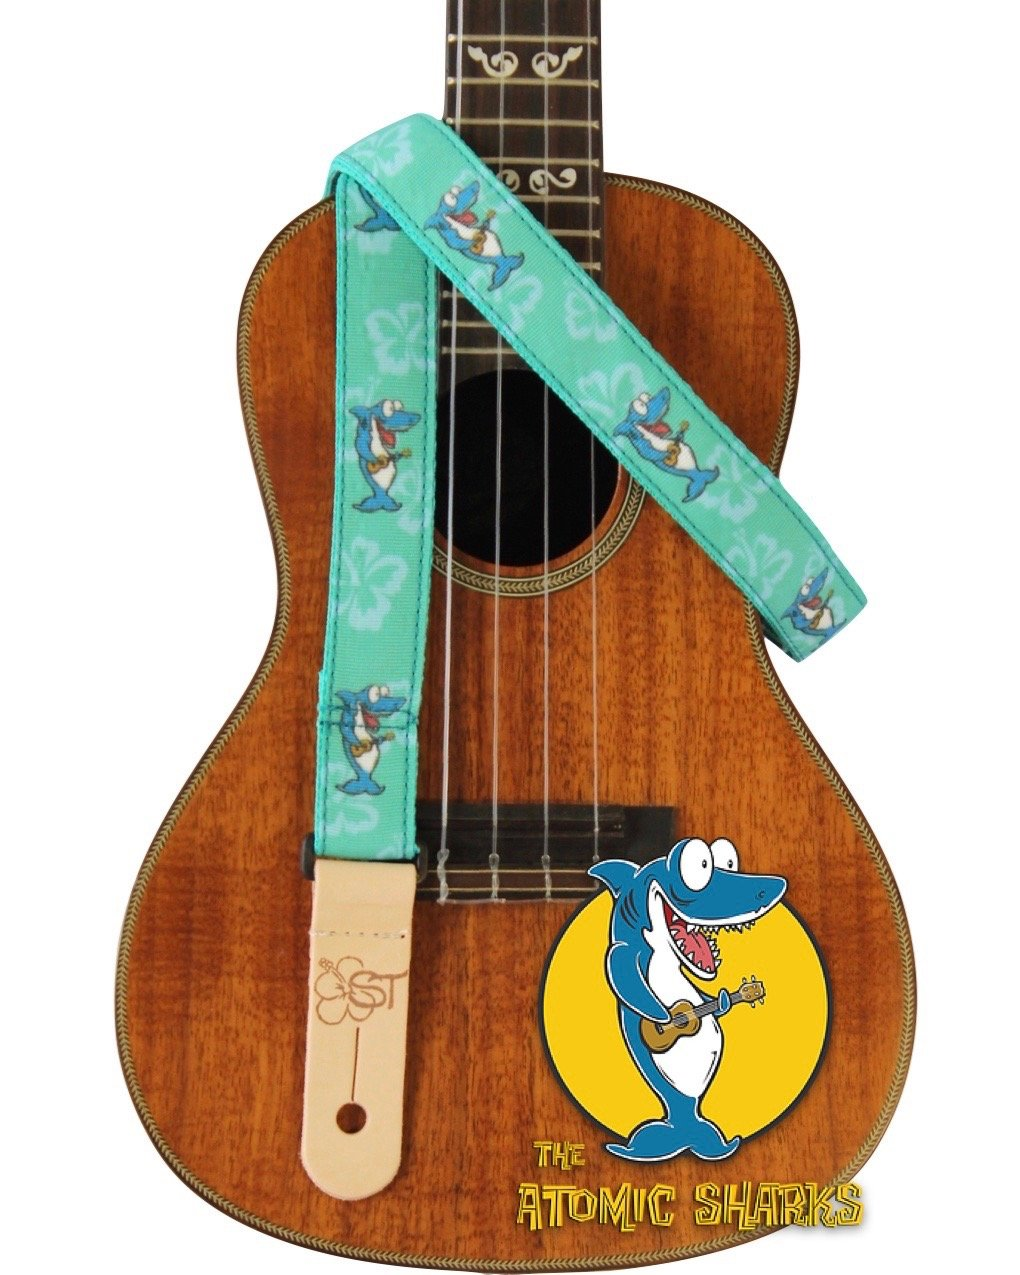 Sherrin's Threads 1 Atomic Sharks Ukulele Strap - Teal